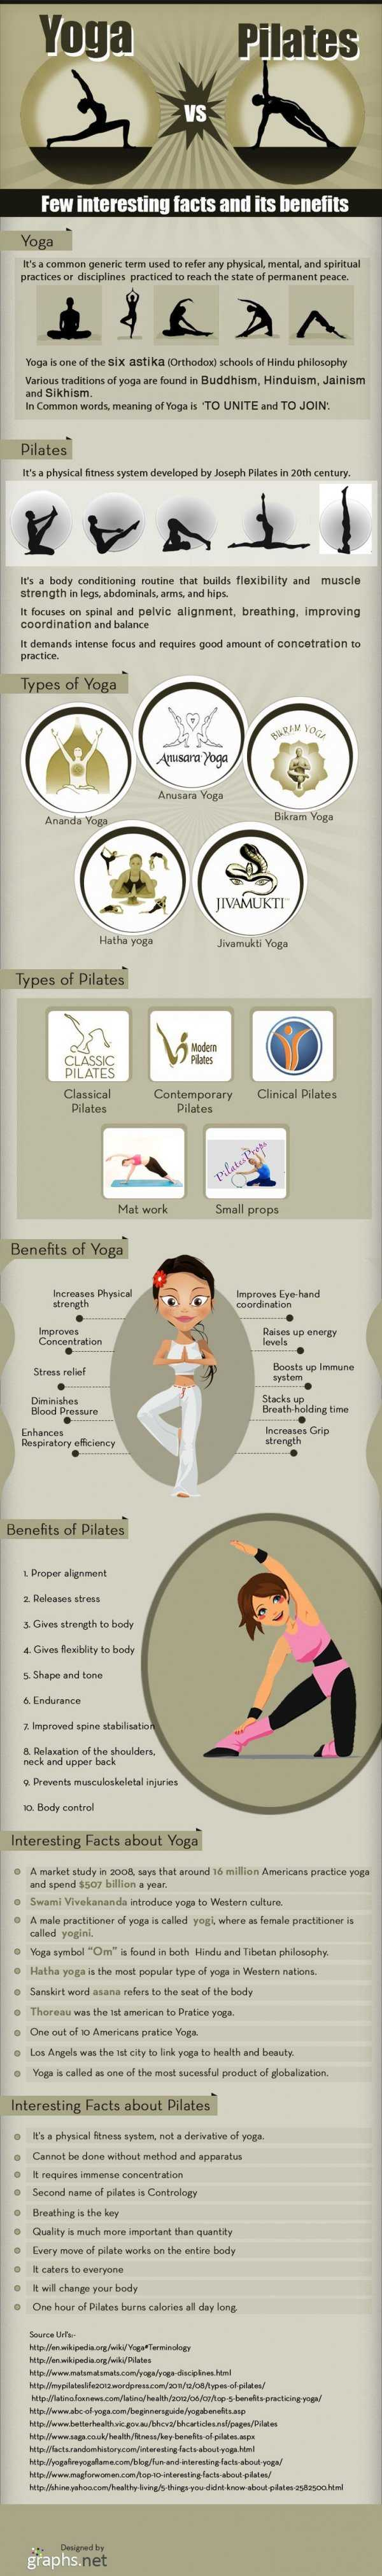 Yoga Vs. Pilates